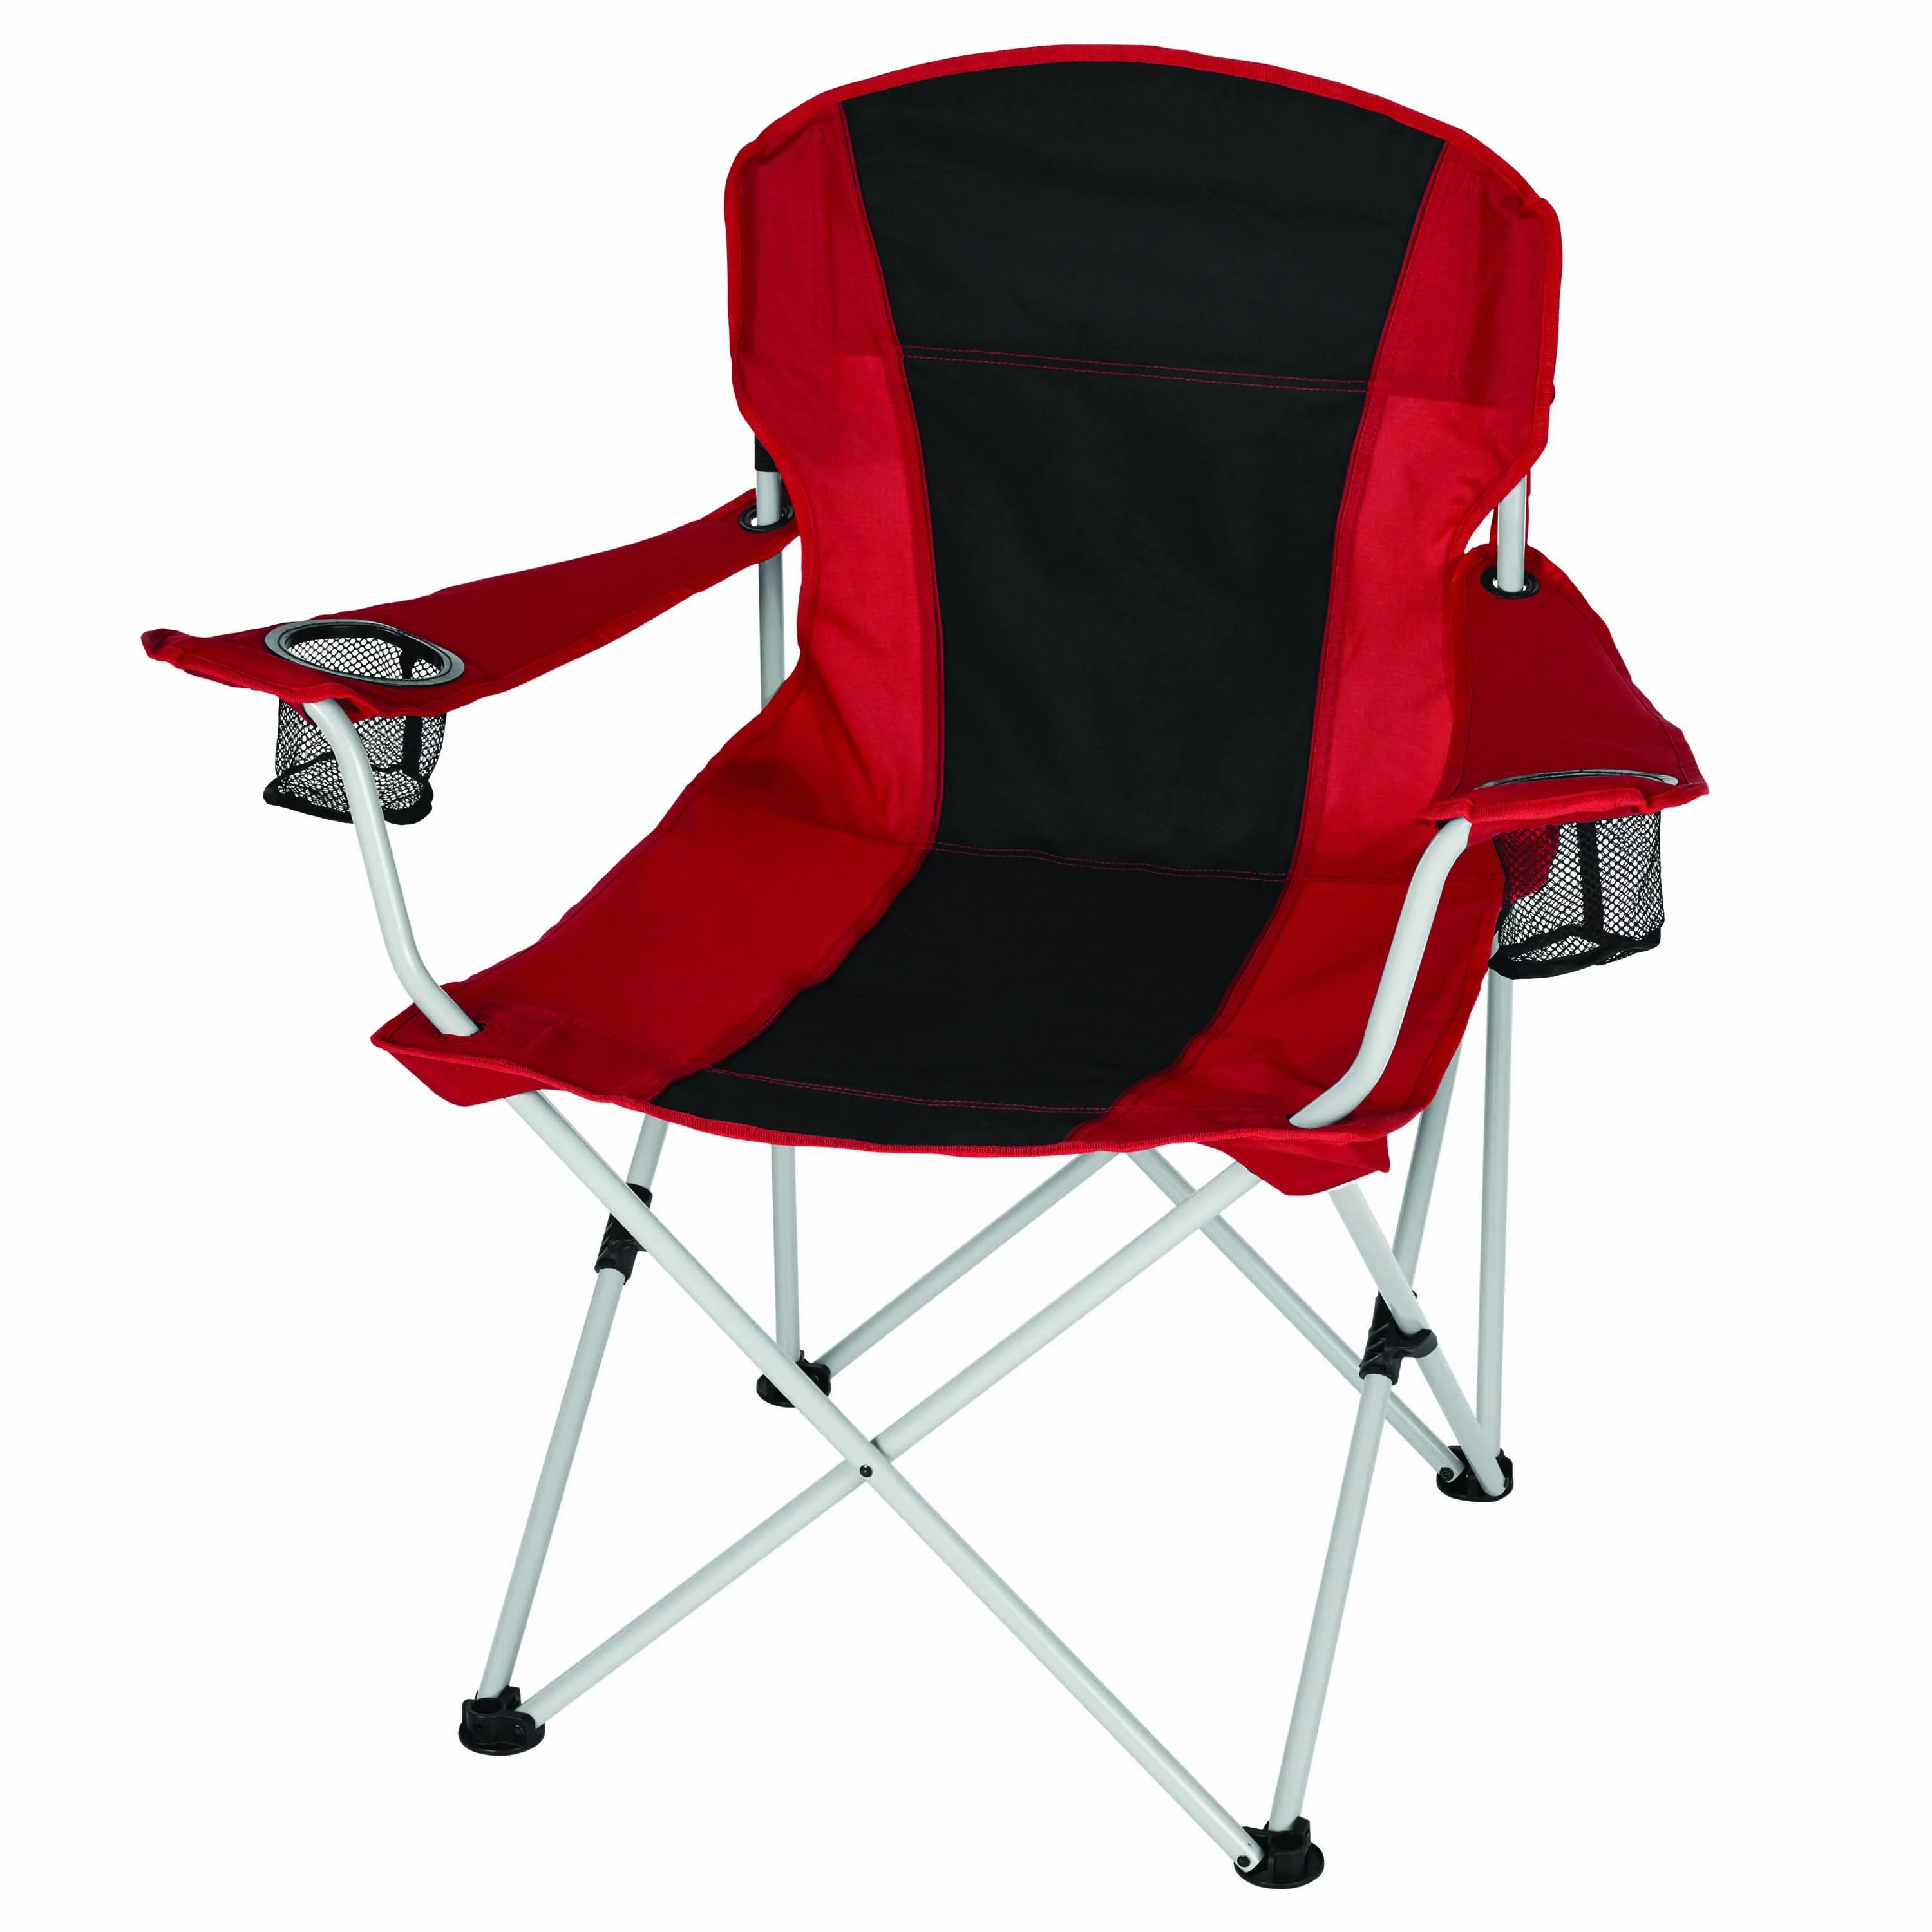 coleman camping oversized quad chair with cooler swivel tesco ozark trail chair, red/black - walmart.com